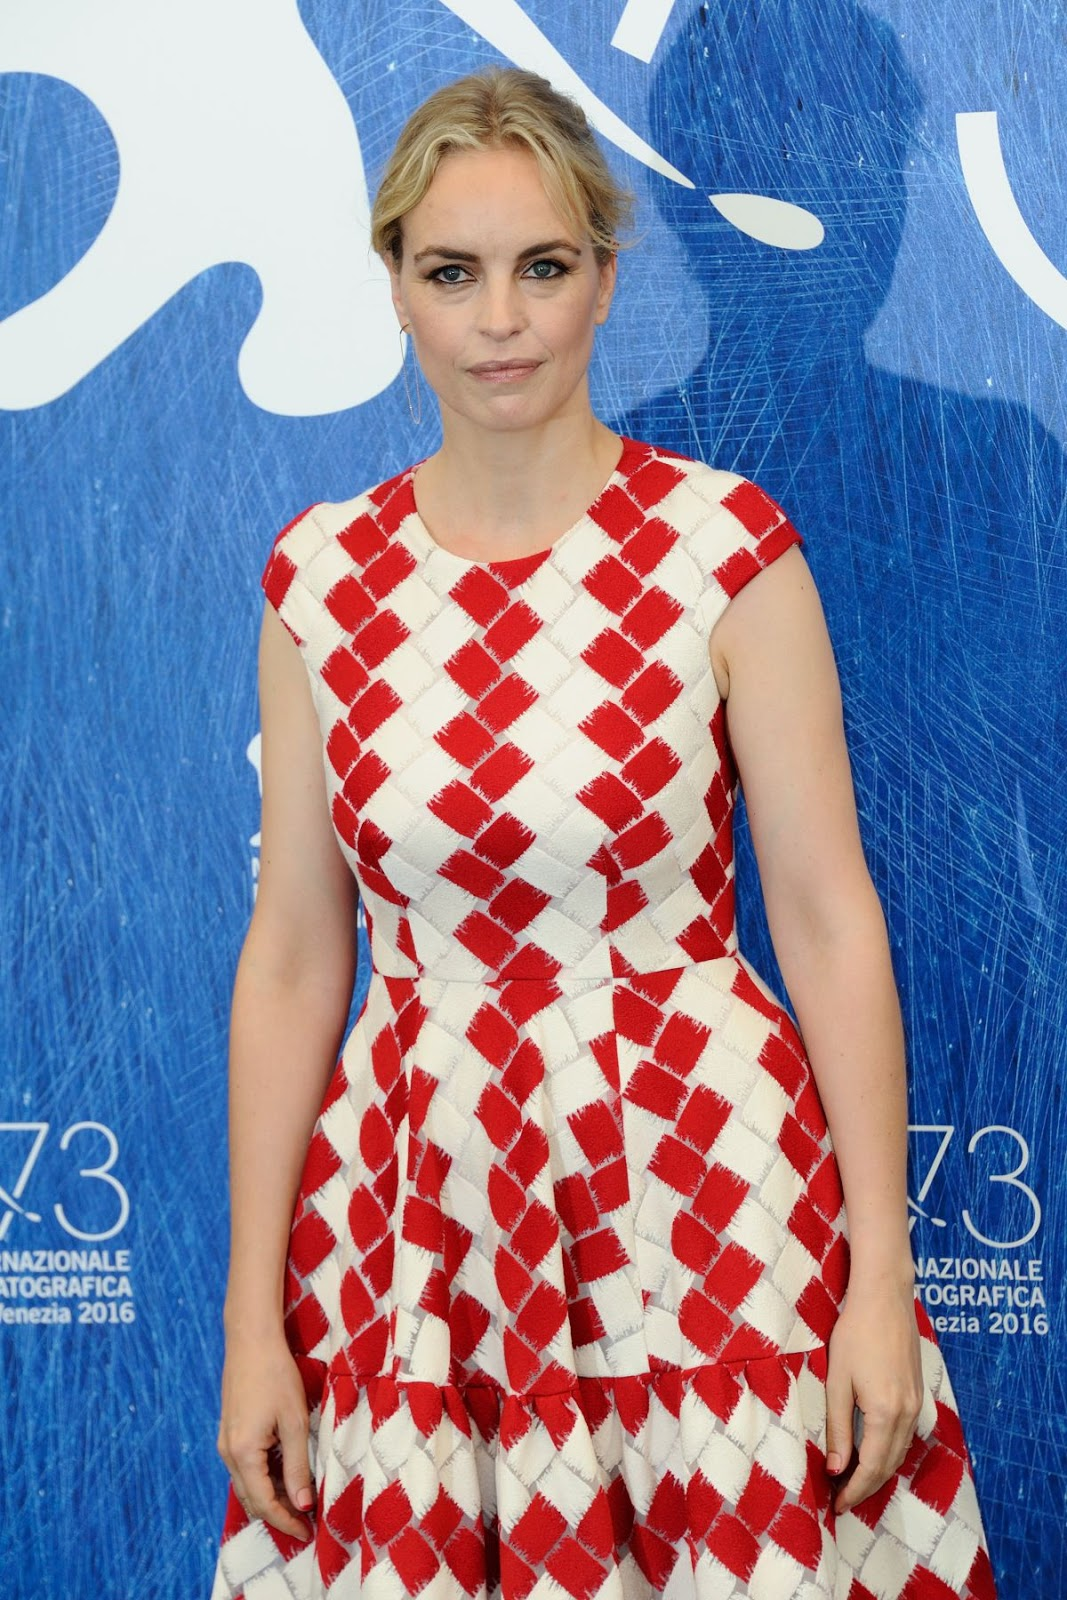 HQ Photos of Nina Hoss at Jury Photocall at 2016 73rd Venice Film Festival in Venice